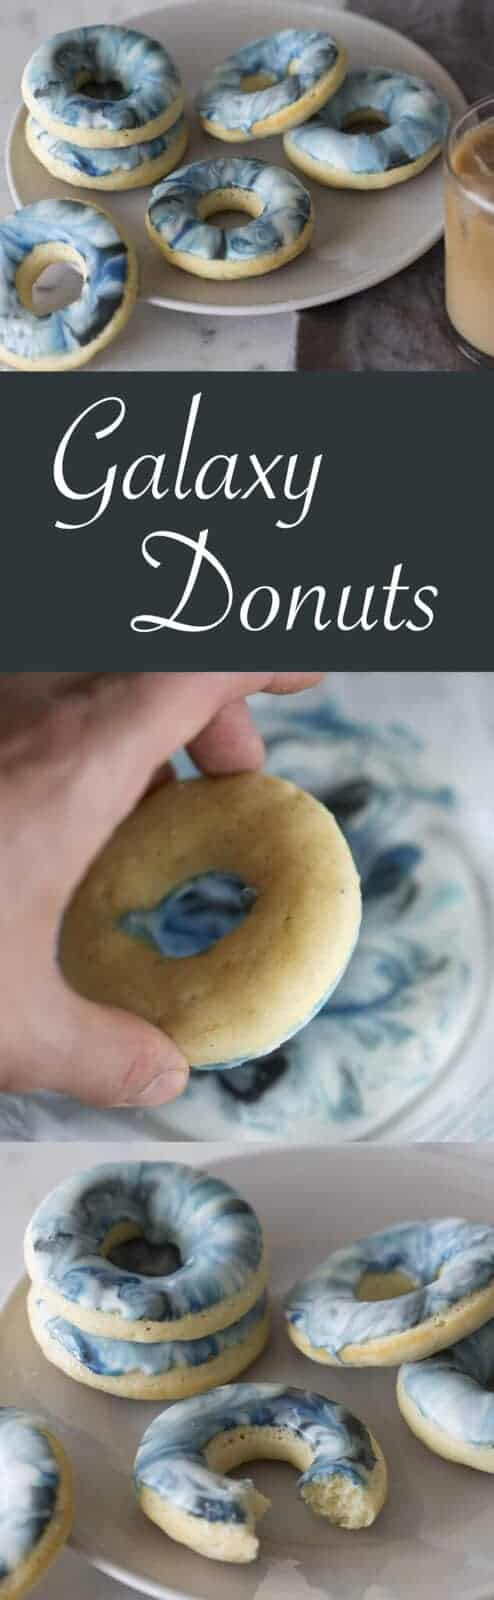 These little baked donuts are light and moist with a subtle something extra from the pinch or allspice.